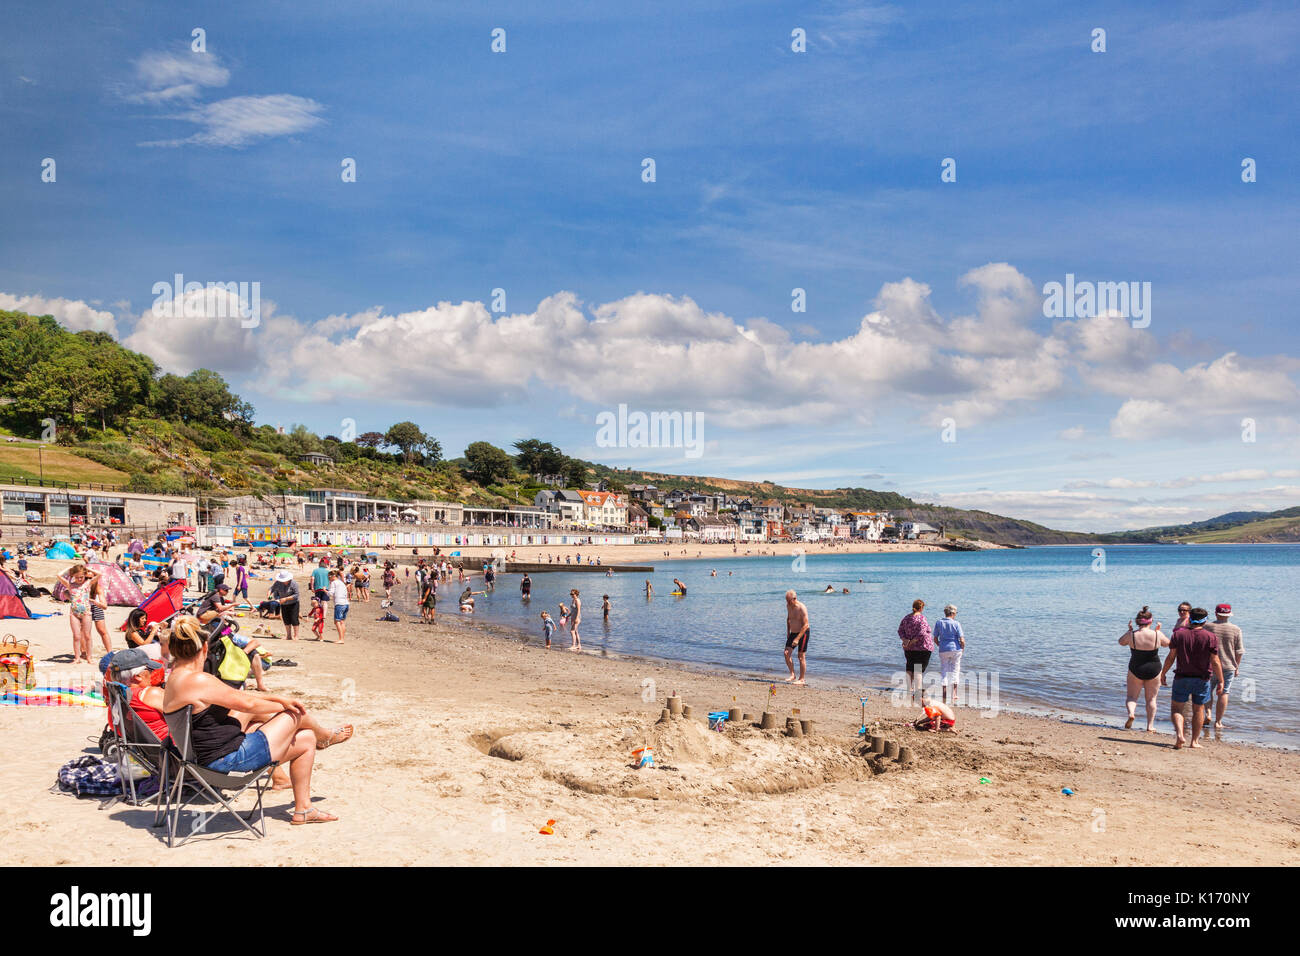 1 July 2017: Lyme Regis, Dorset, England, UK - Sandy Beach on a hot sunny summer day. - Stock Image